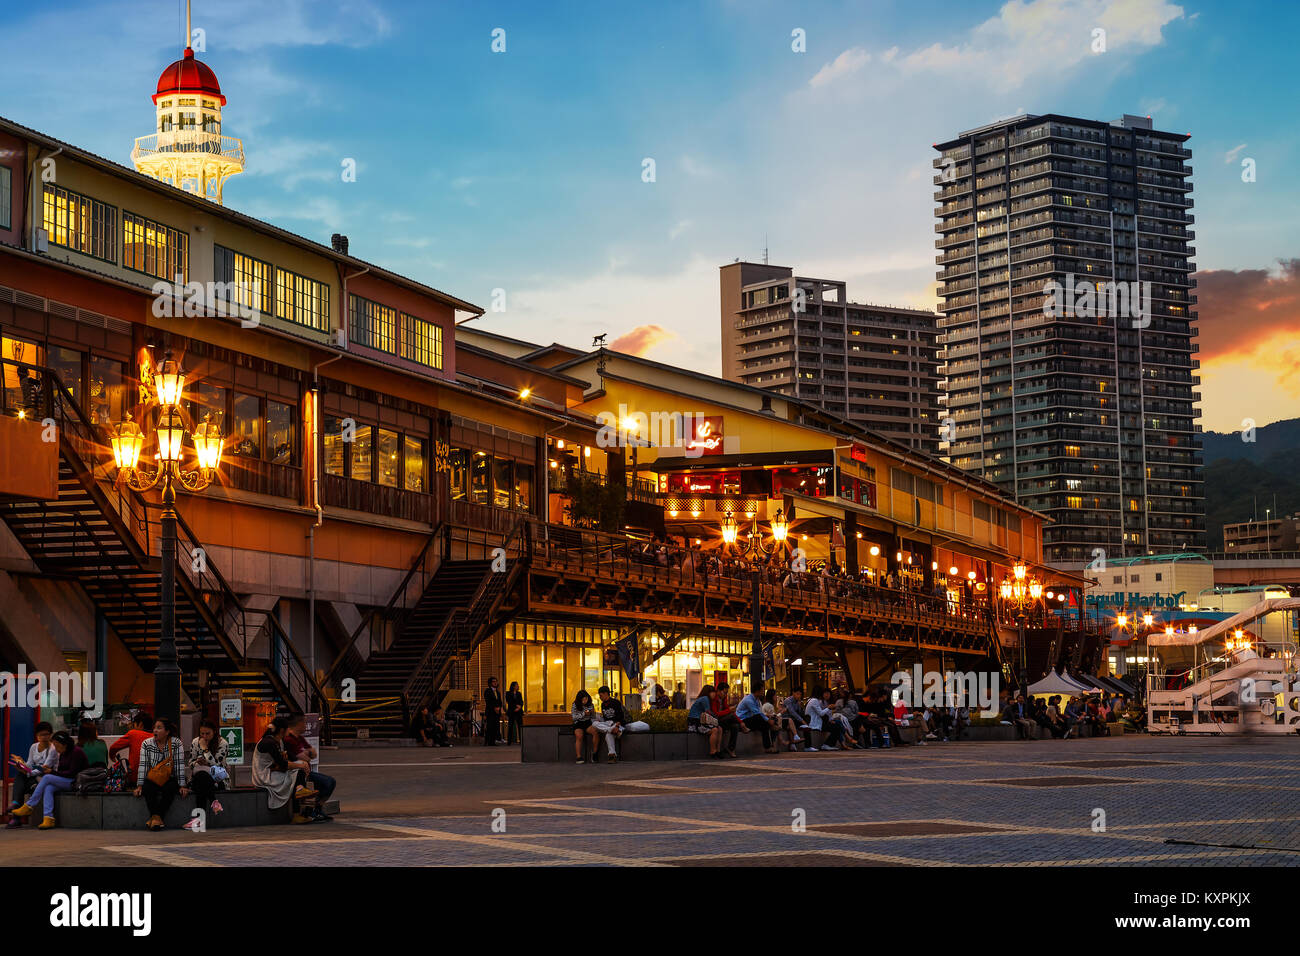 KOBE, JAPAN - OCTOBER 26: Harborland in Kobe, Japan on October 26, 2014. Opened in 1992, a shopping district made - Stock Image